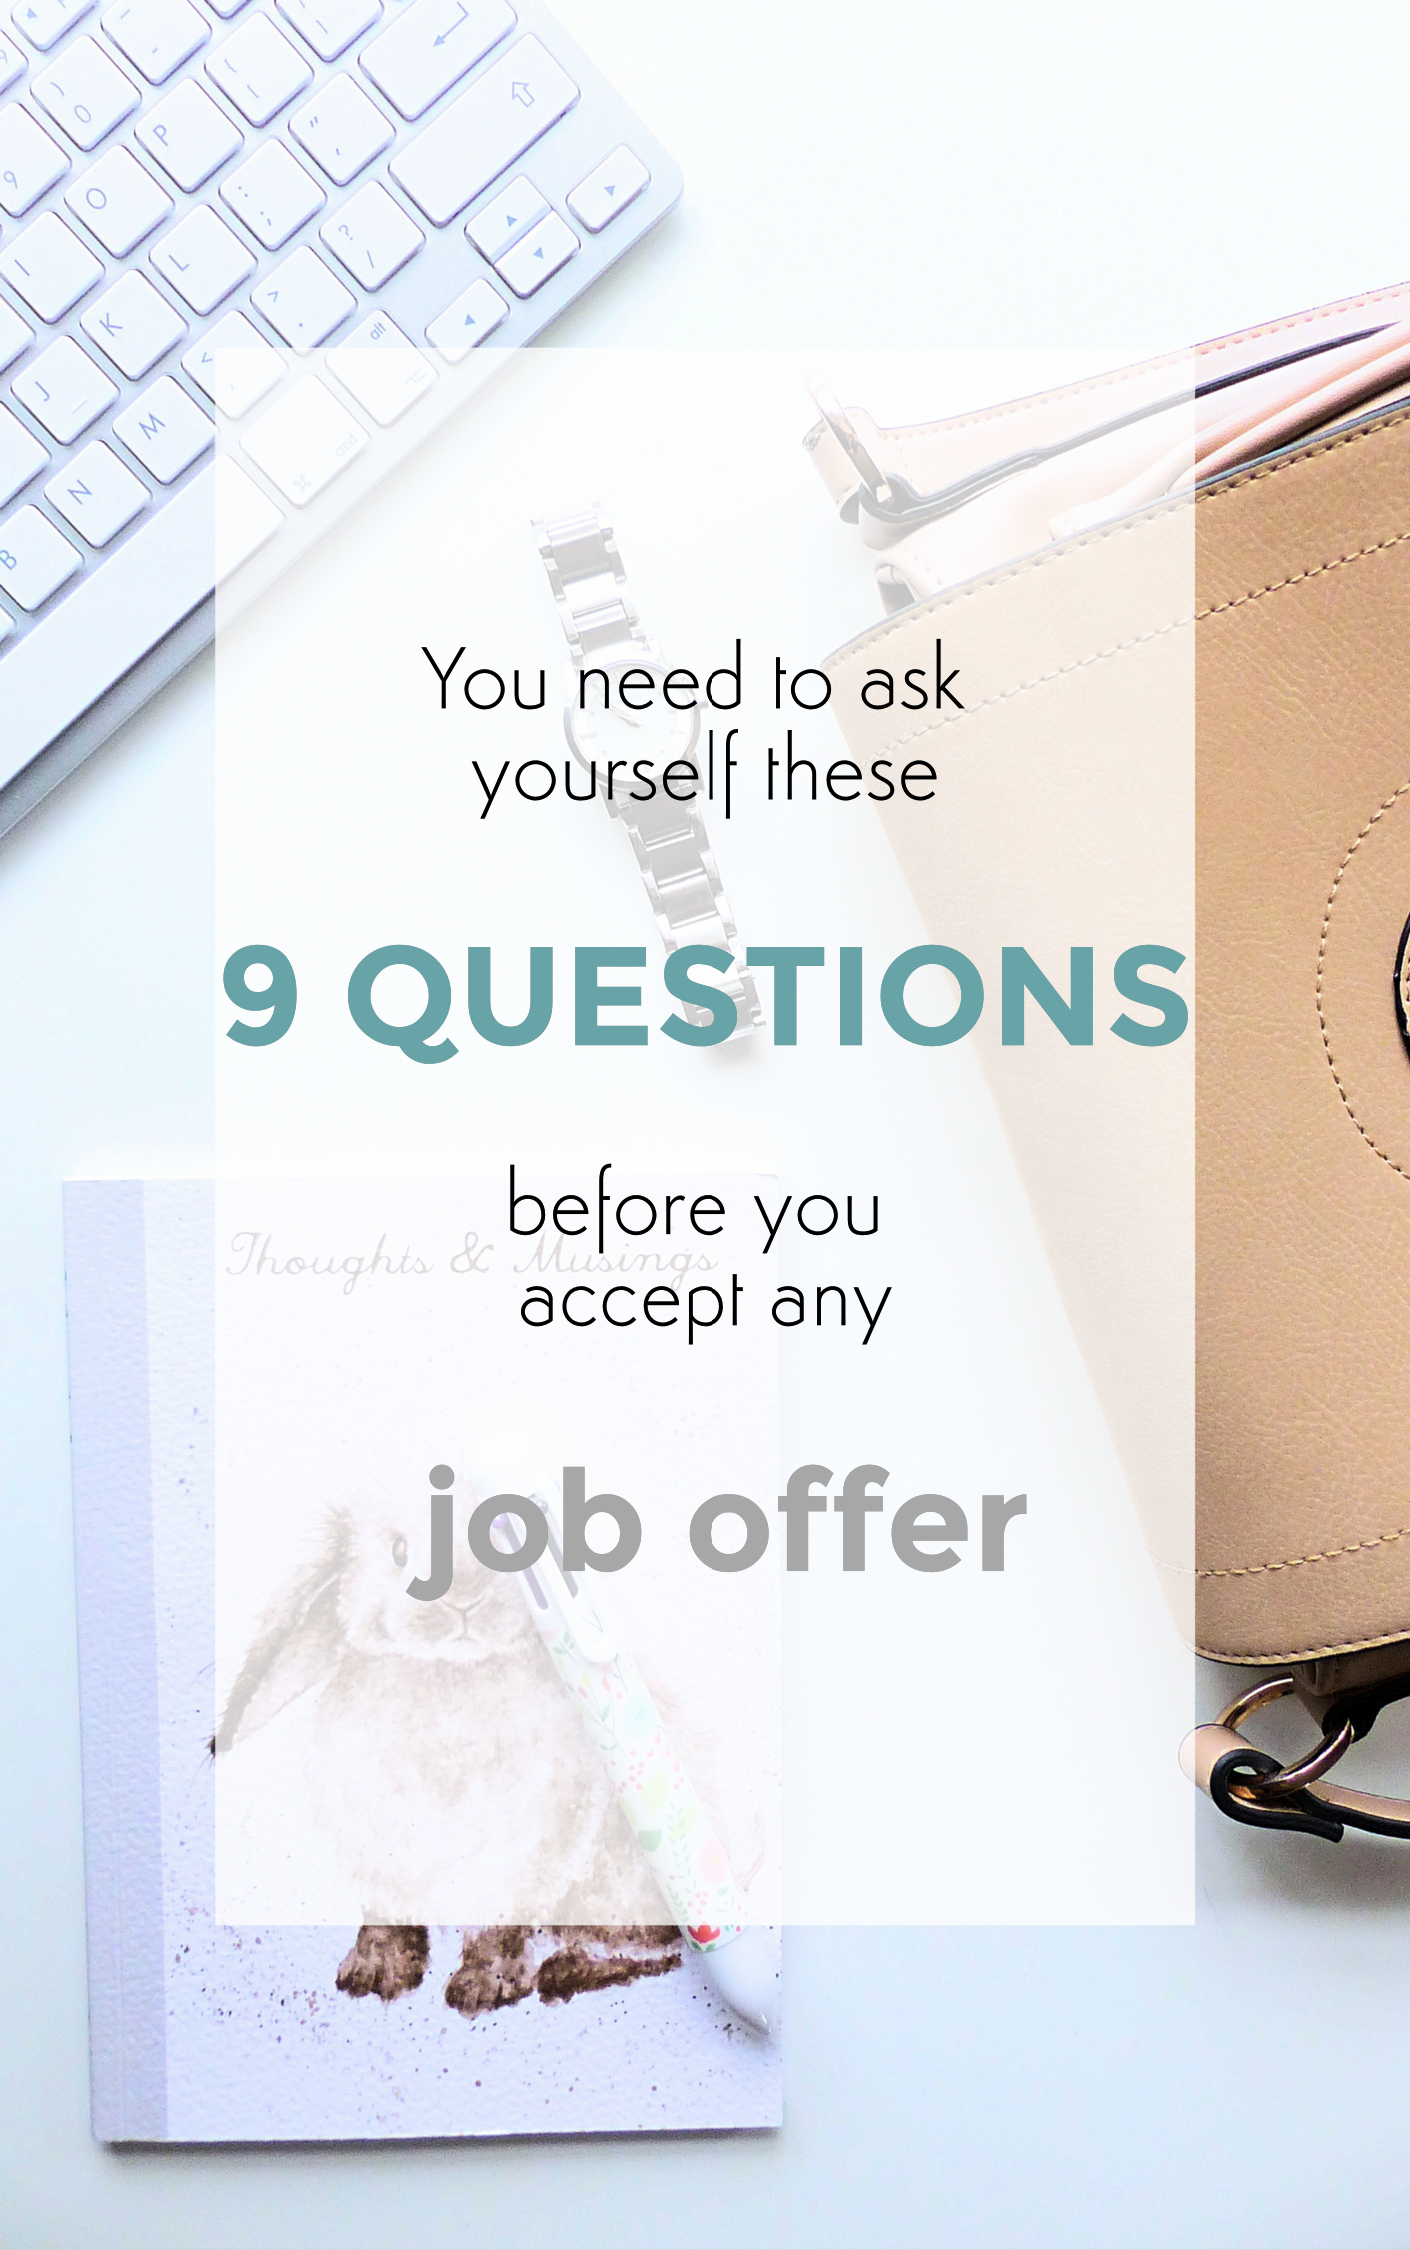 You need to ask these 9 questions before you accept any job offer